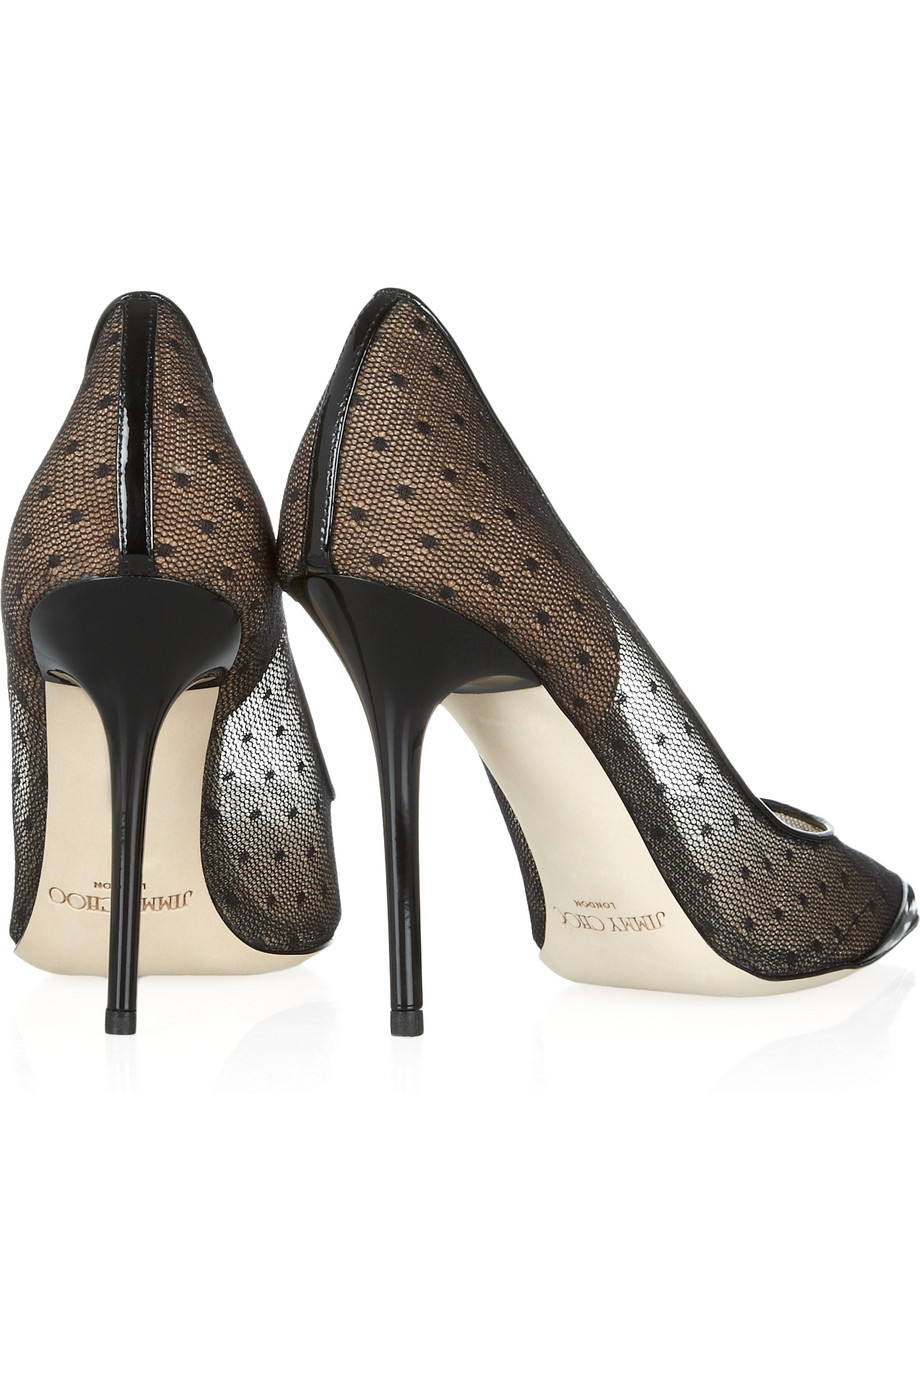 0ef4a510f63f Jimmy choo Barb Lace Pointedtoe Pumps in Black